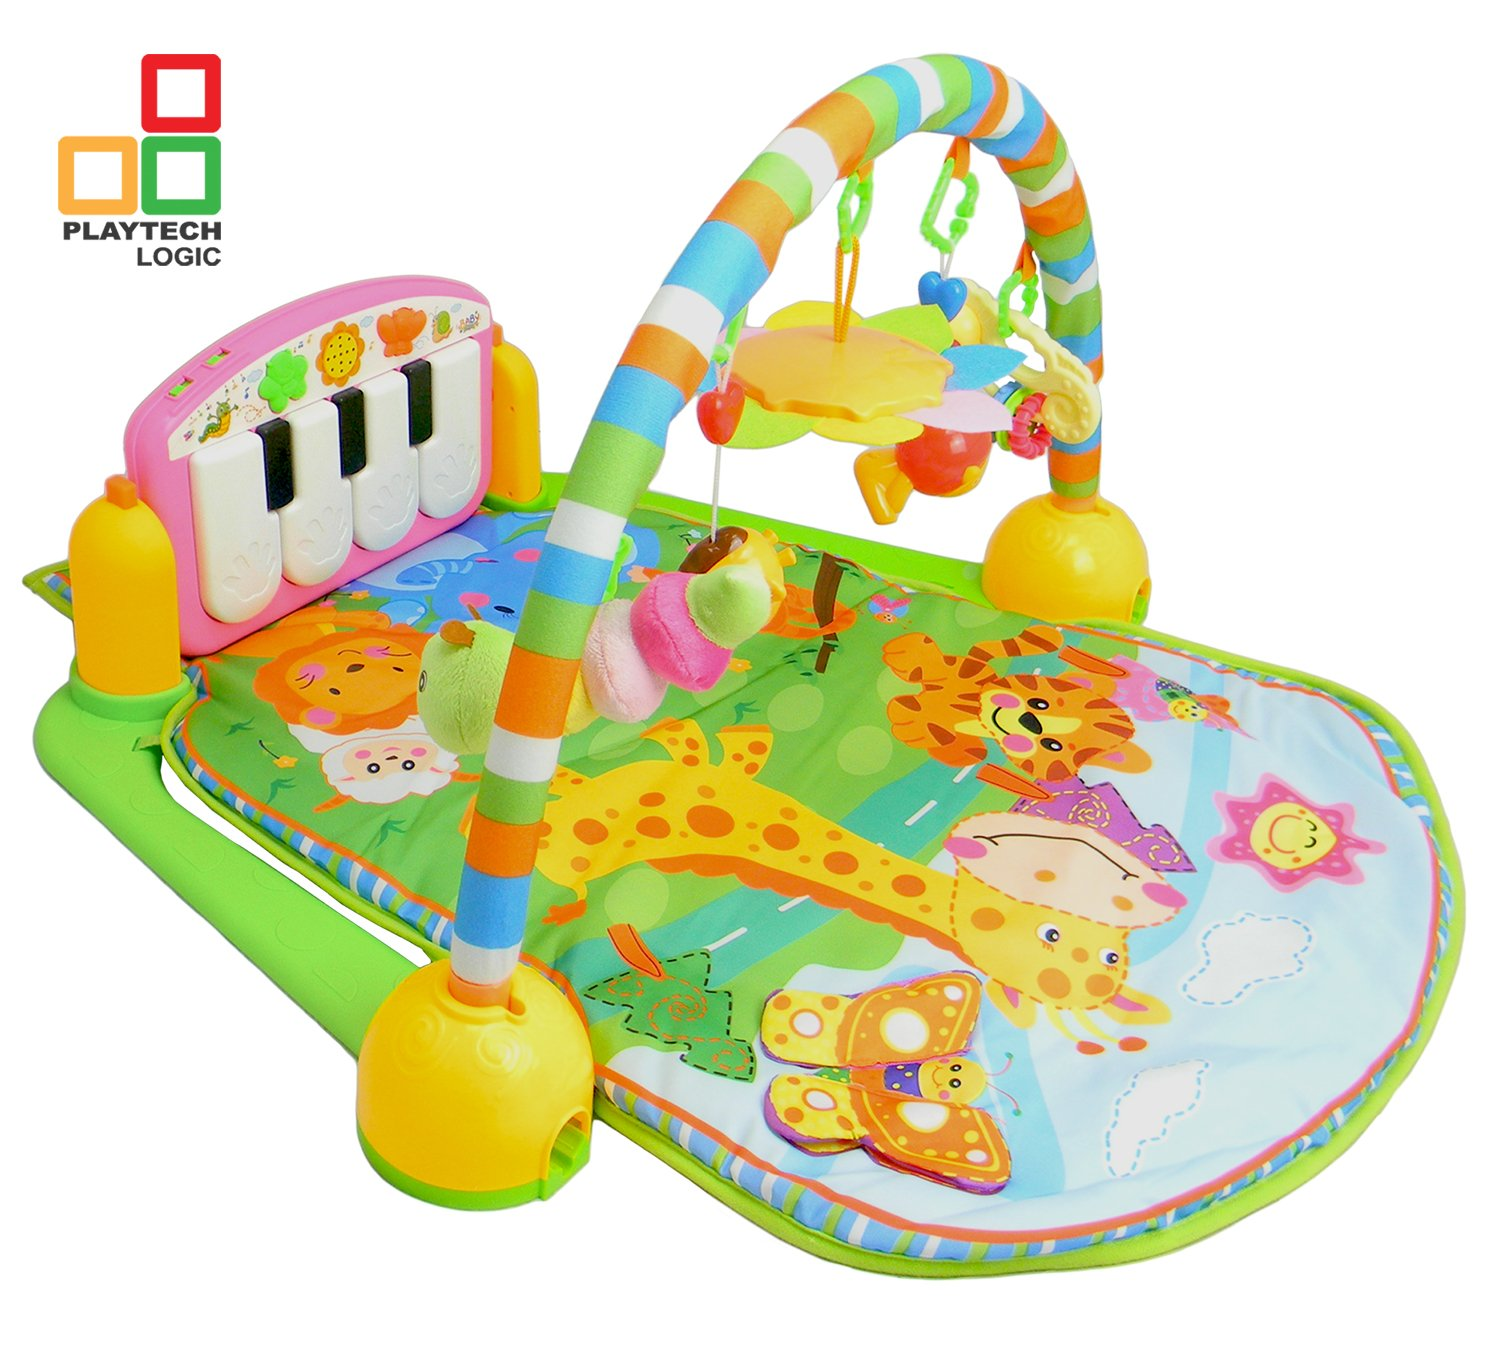 Piano Kick and Play Baby Play Gym Activity Mat Suitable from Birth   Large 4-in-1 Musical Playmat Activity Centre   Light & Sound Discovery Play Mat for Infant Toddler Newborn Babies 0-36 Months Pink Playtech Logic